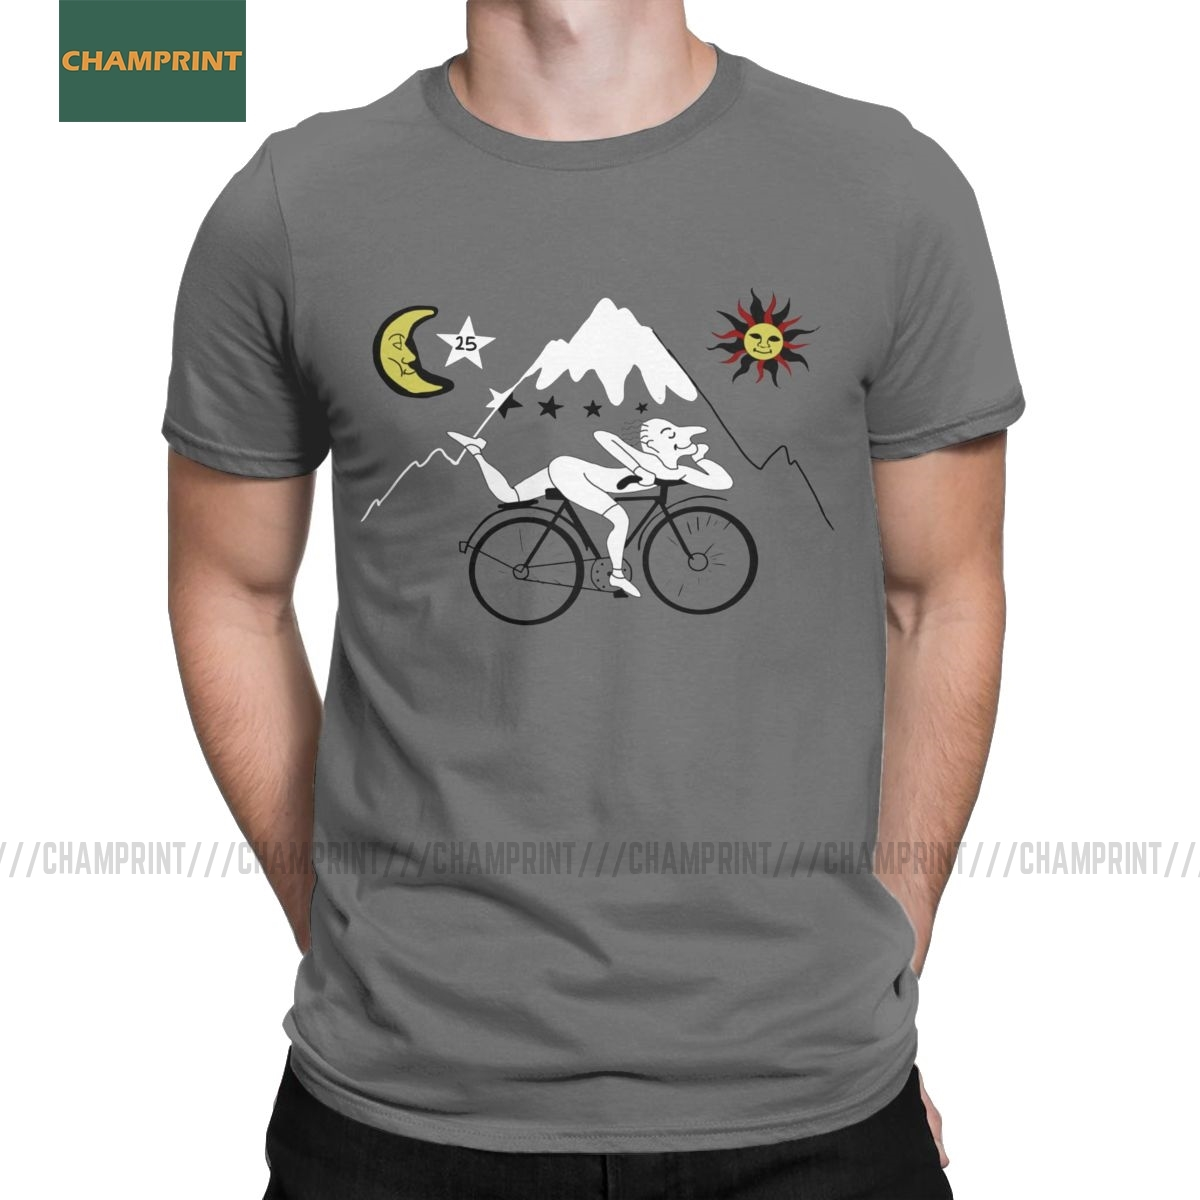 Men's Bicycle Day Albert Hofmann T Shirt Lsd Acid Blotter Party Cotton Clothing Vintage Short Sleeve Tees Birthday Gift T-Shirt